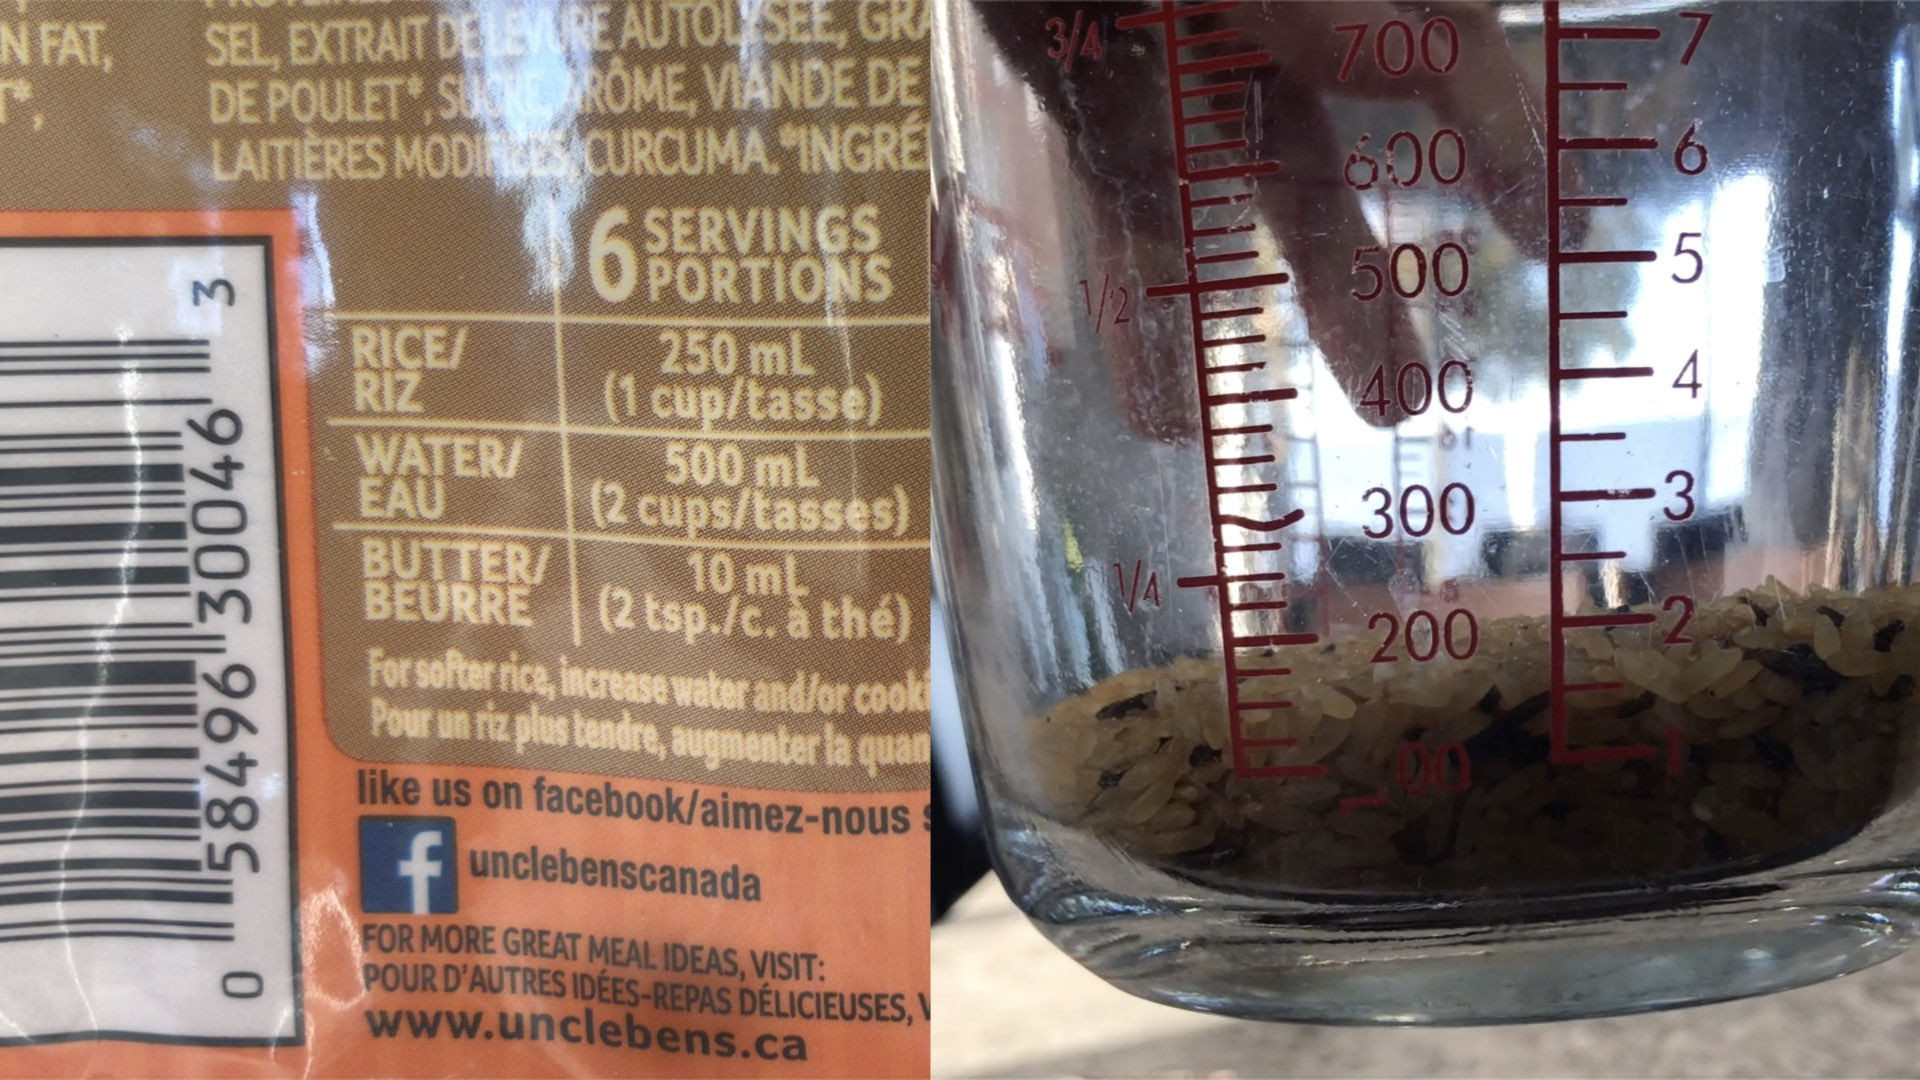 Uncle Bens Rice.009 Bag of Rice Measuring Cup